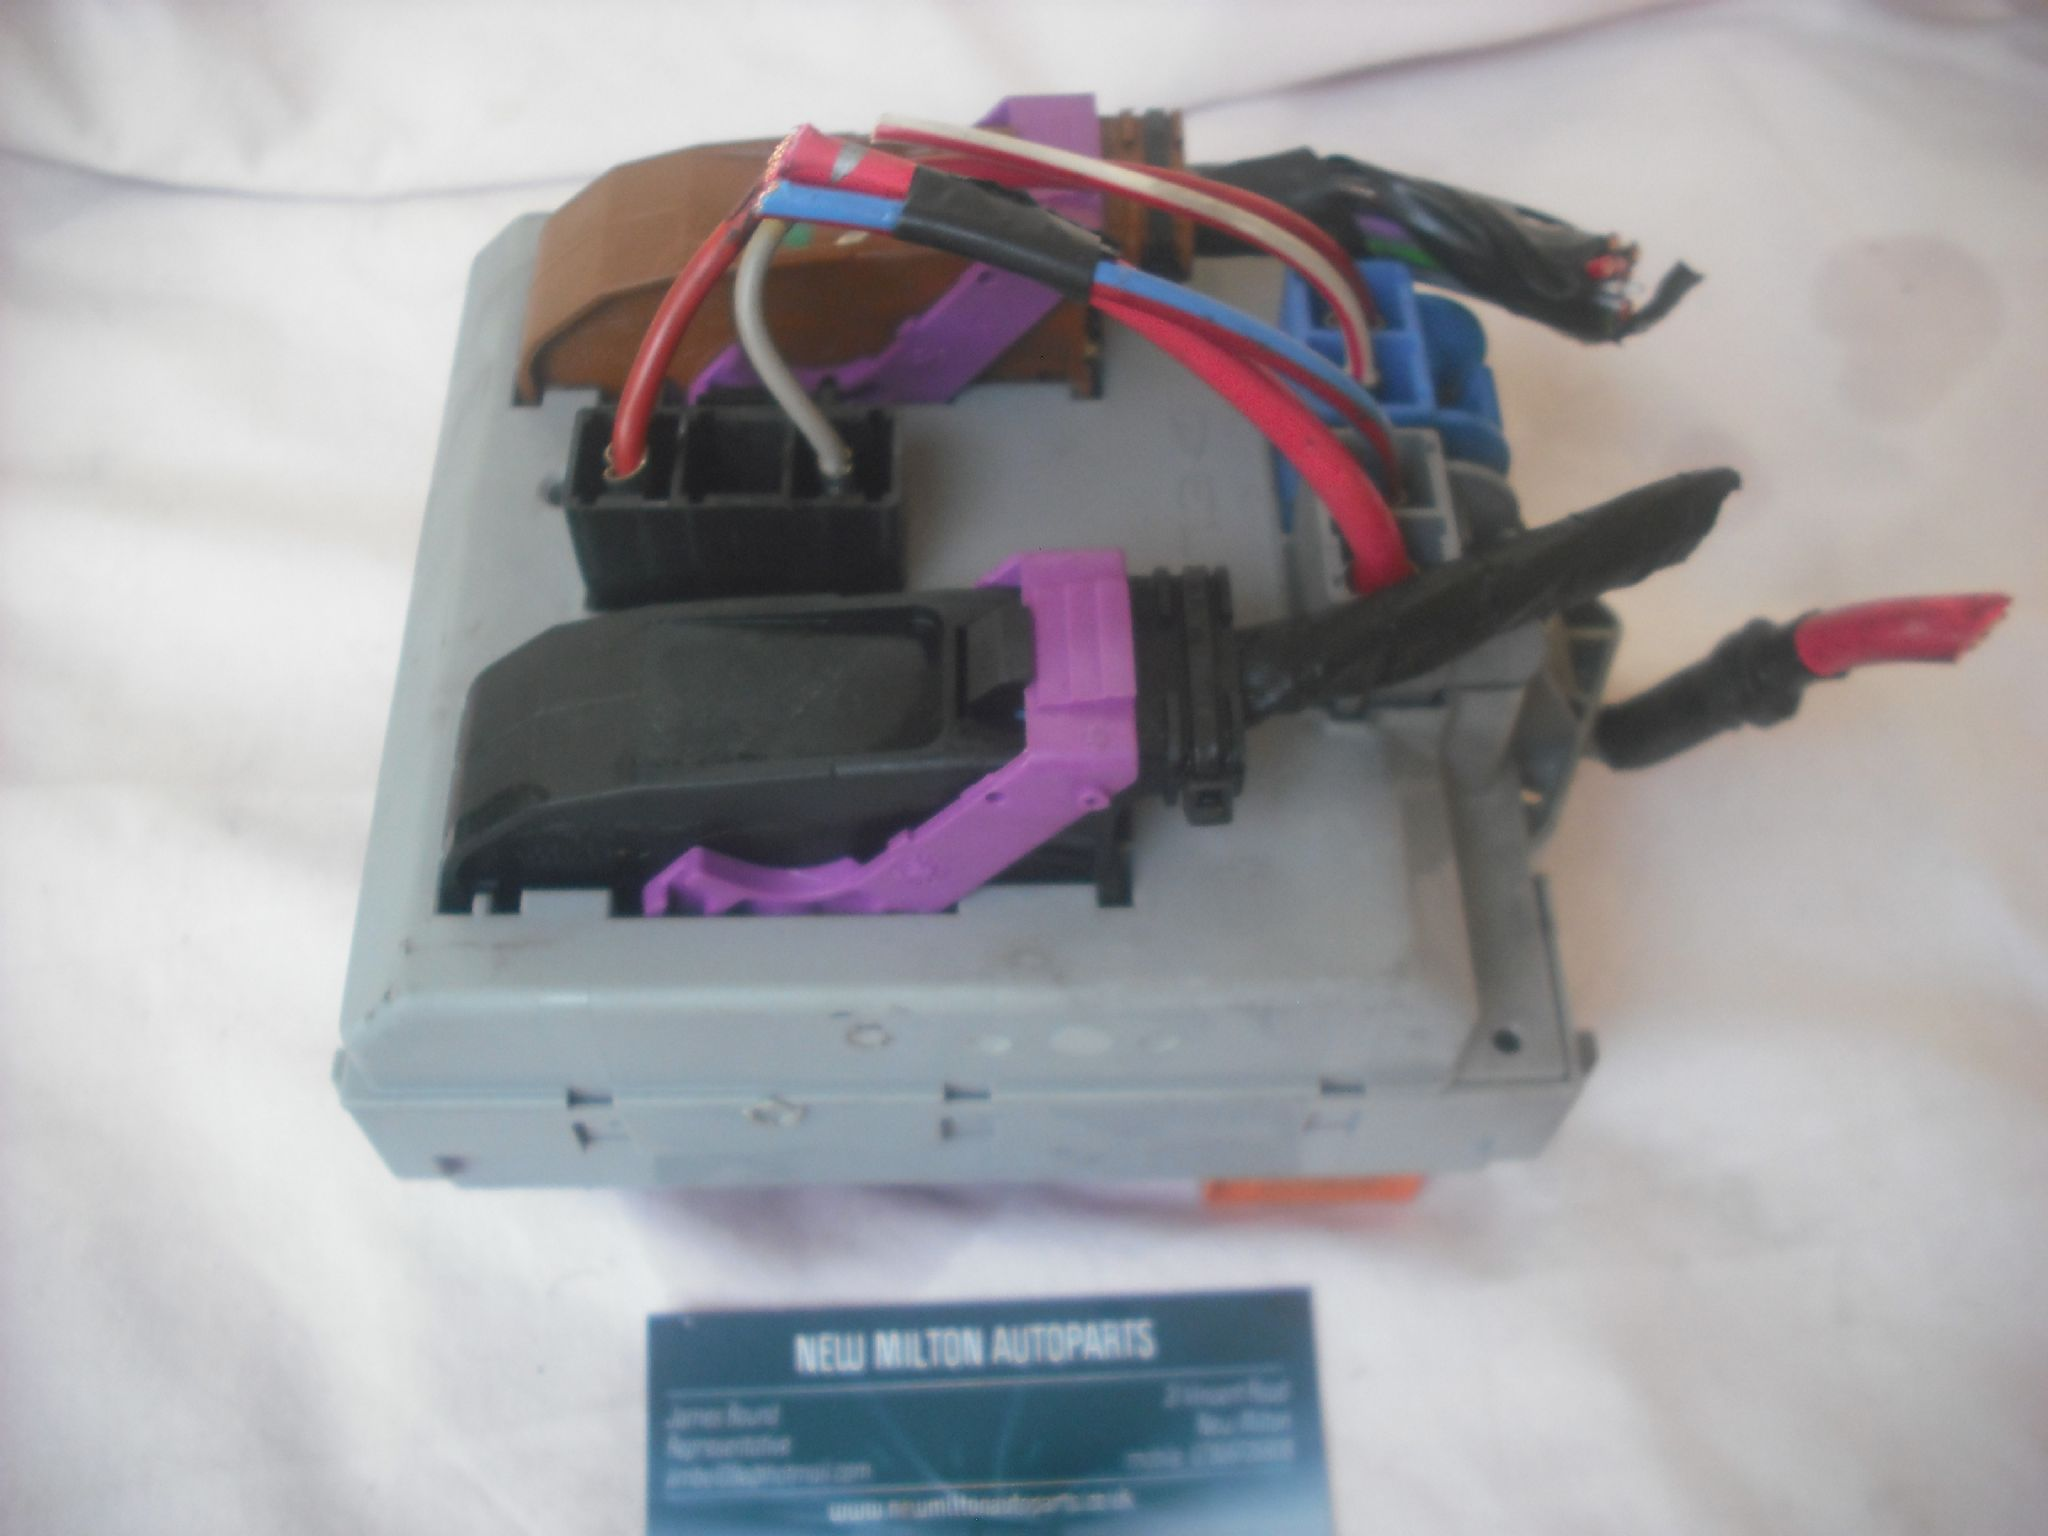 Fiat Fiorino Van Fuse Box Explained Wiring Diagrams Diagram Doblo 1 9 Jtd Diesel Engine Bay Module 51763770 Citroen Berlingo